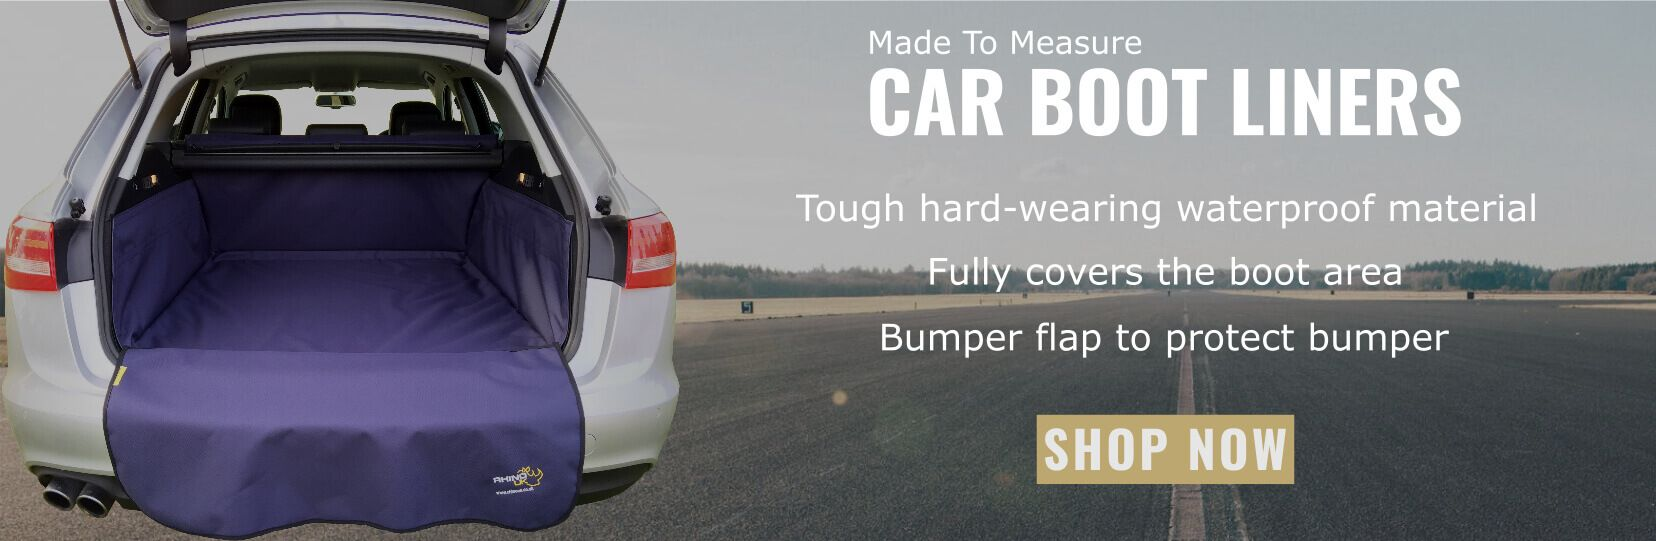 Car Boot Liners Banner